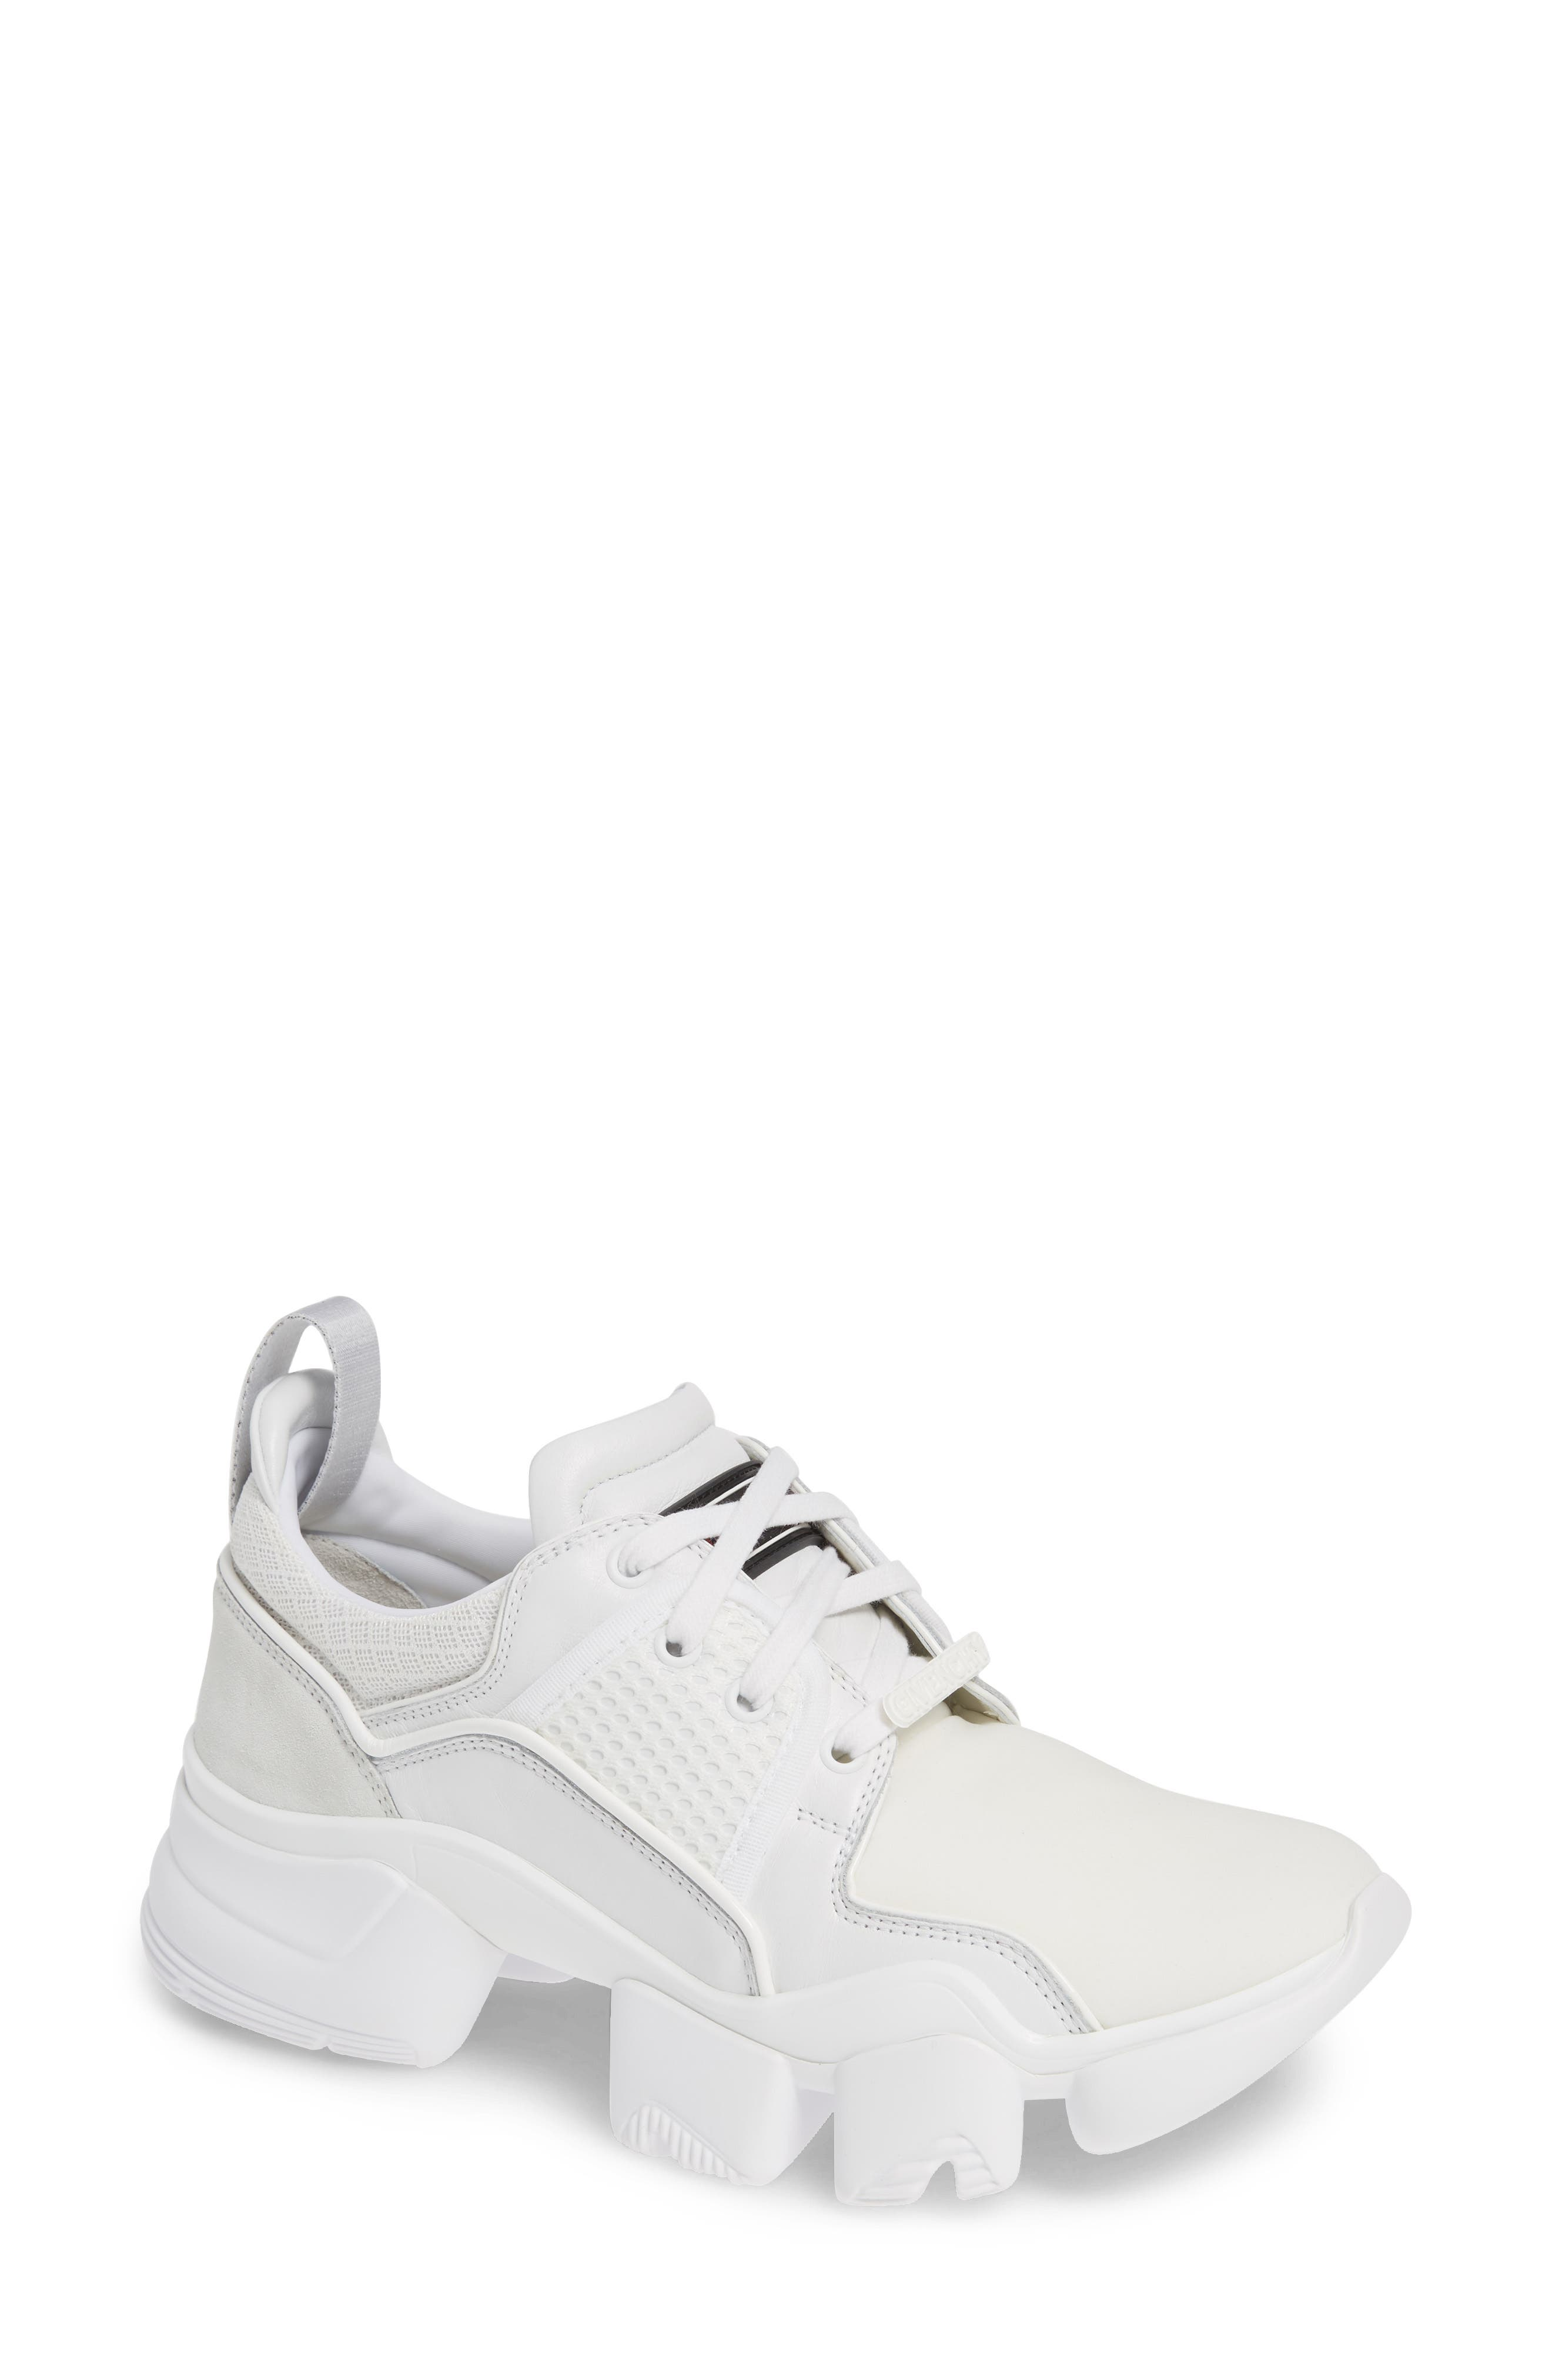 Givenchy Jaw Sneaker - White